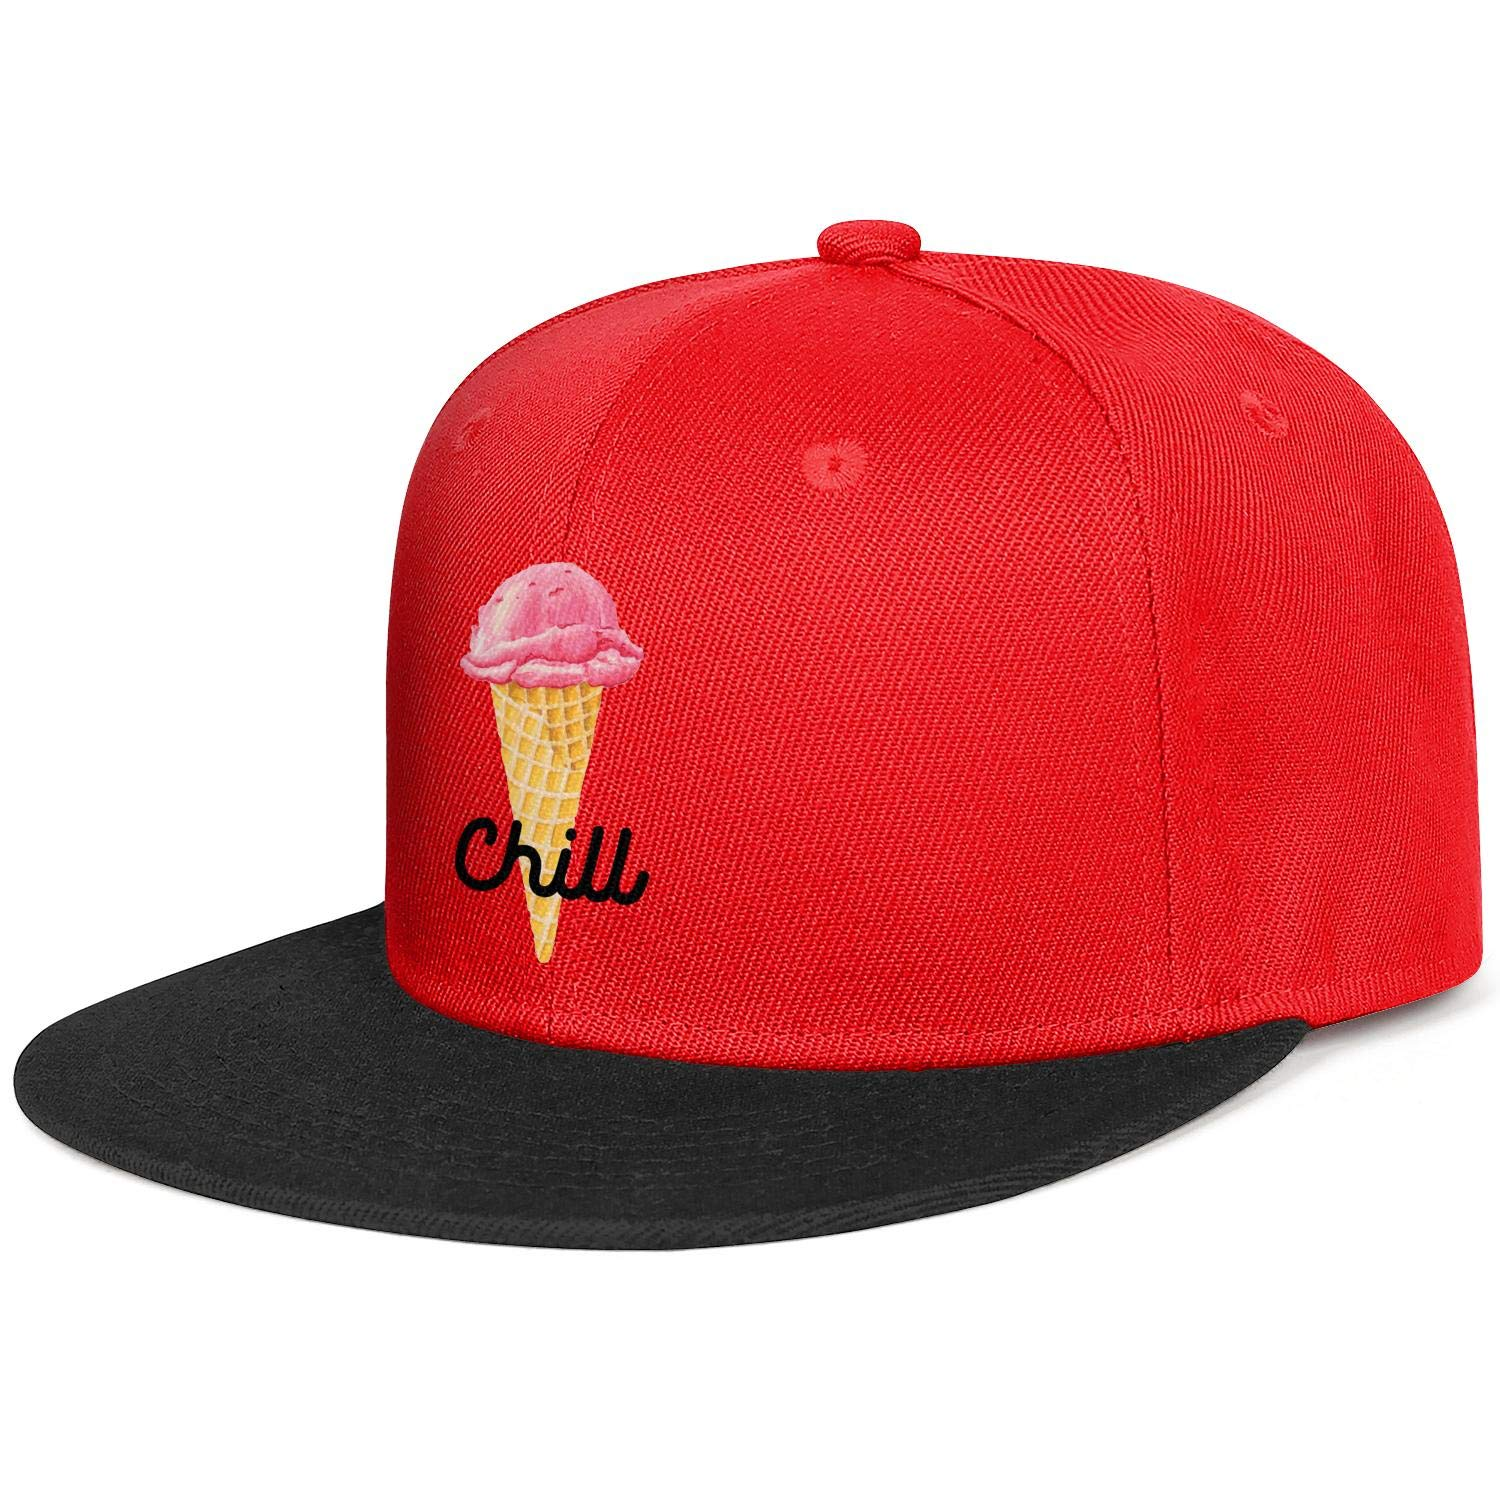 Unisex Mesh Snapback Cap Choco Ice Cream Bar Flat Hip Hop Baseball Hats